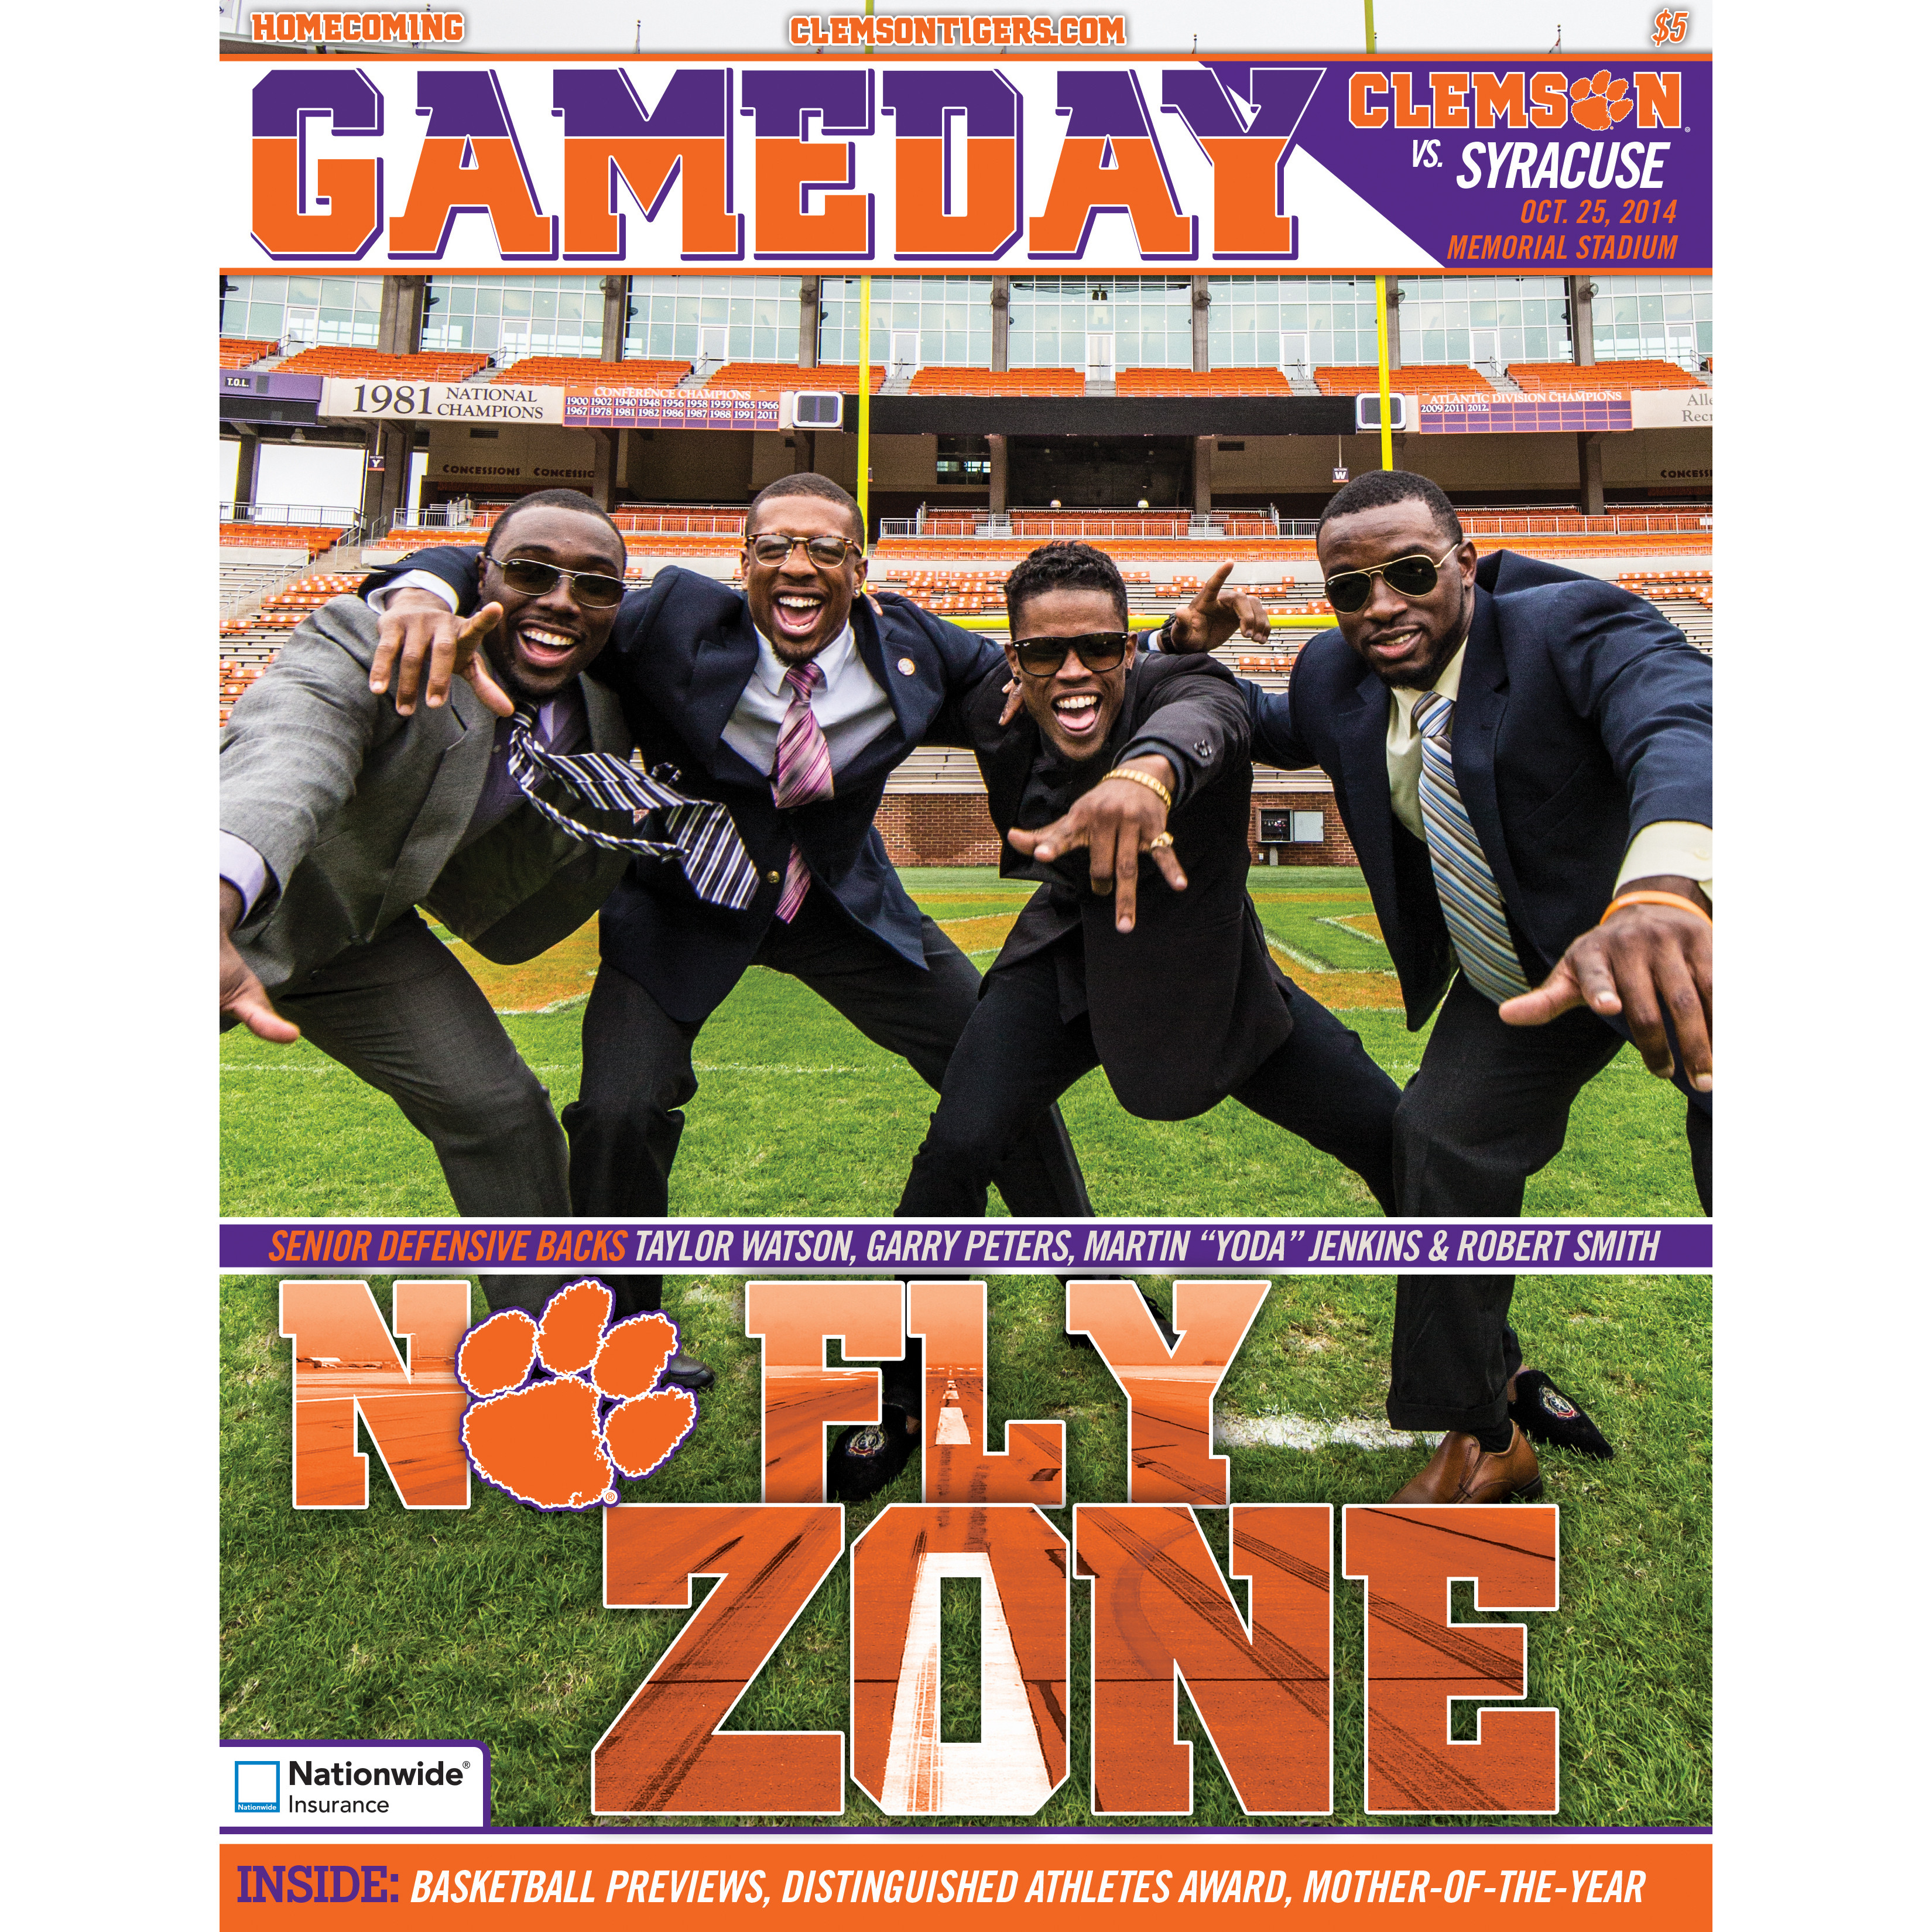 Syracuse Game Program Available to Purchase & View Online